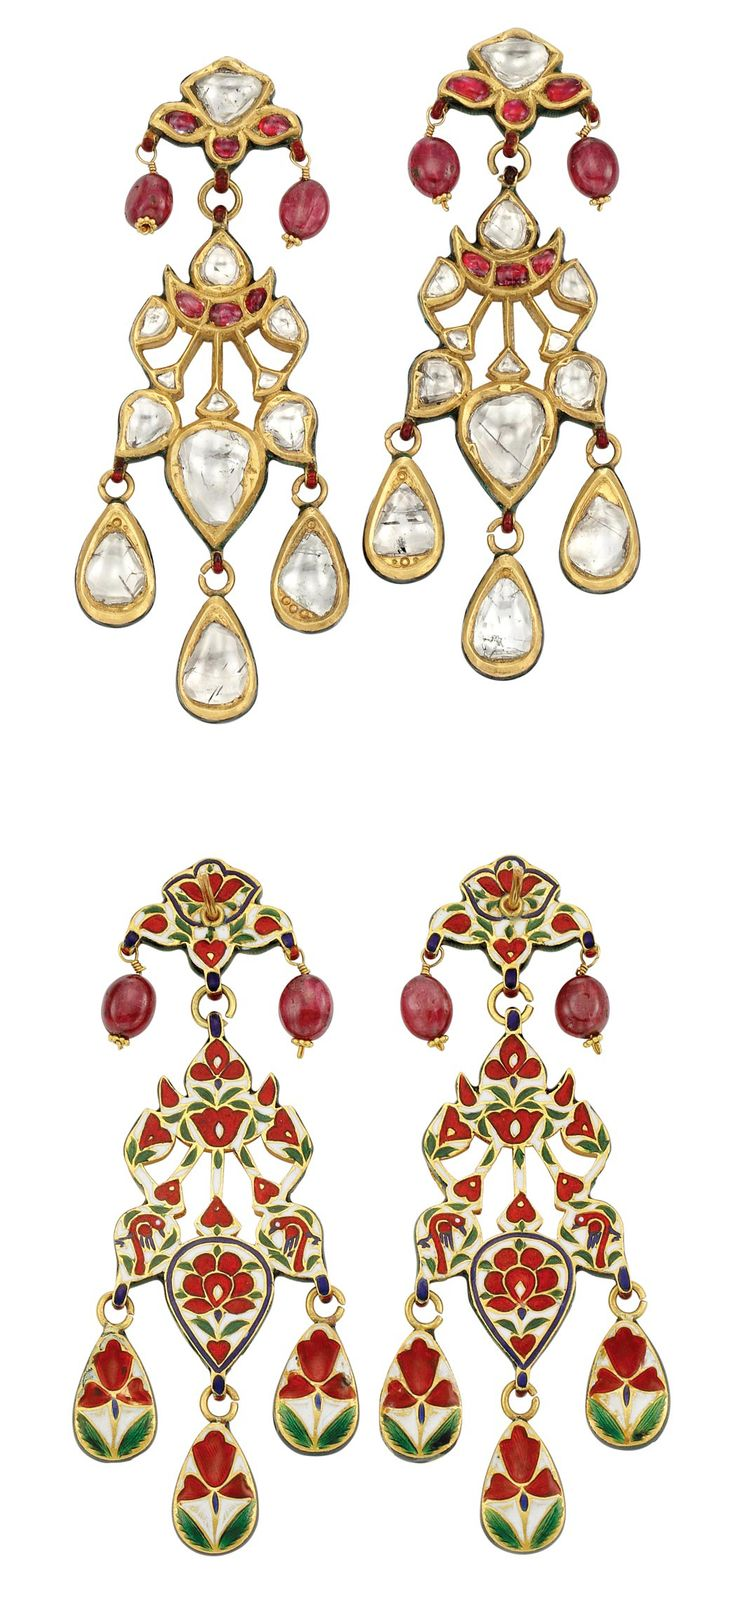 Pair of Indian Gold, Foiled-Back Diamond, Ruby Bead and Jaipur Enamel Pendant-Earrings  Topped and suspending tiers of 26 fancy and pear-shaped foiled-back diamonds, accented by 12 foiled-back rubies, further suspending 4 ruby beads, the reverse applied with decorative Jaipur enamel, approximately 18.6 dwts. gross.